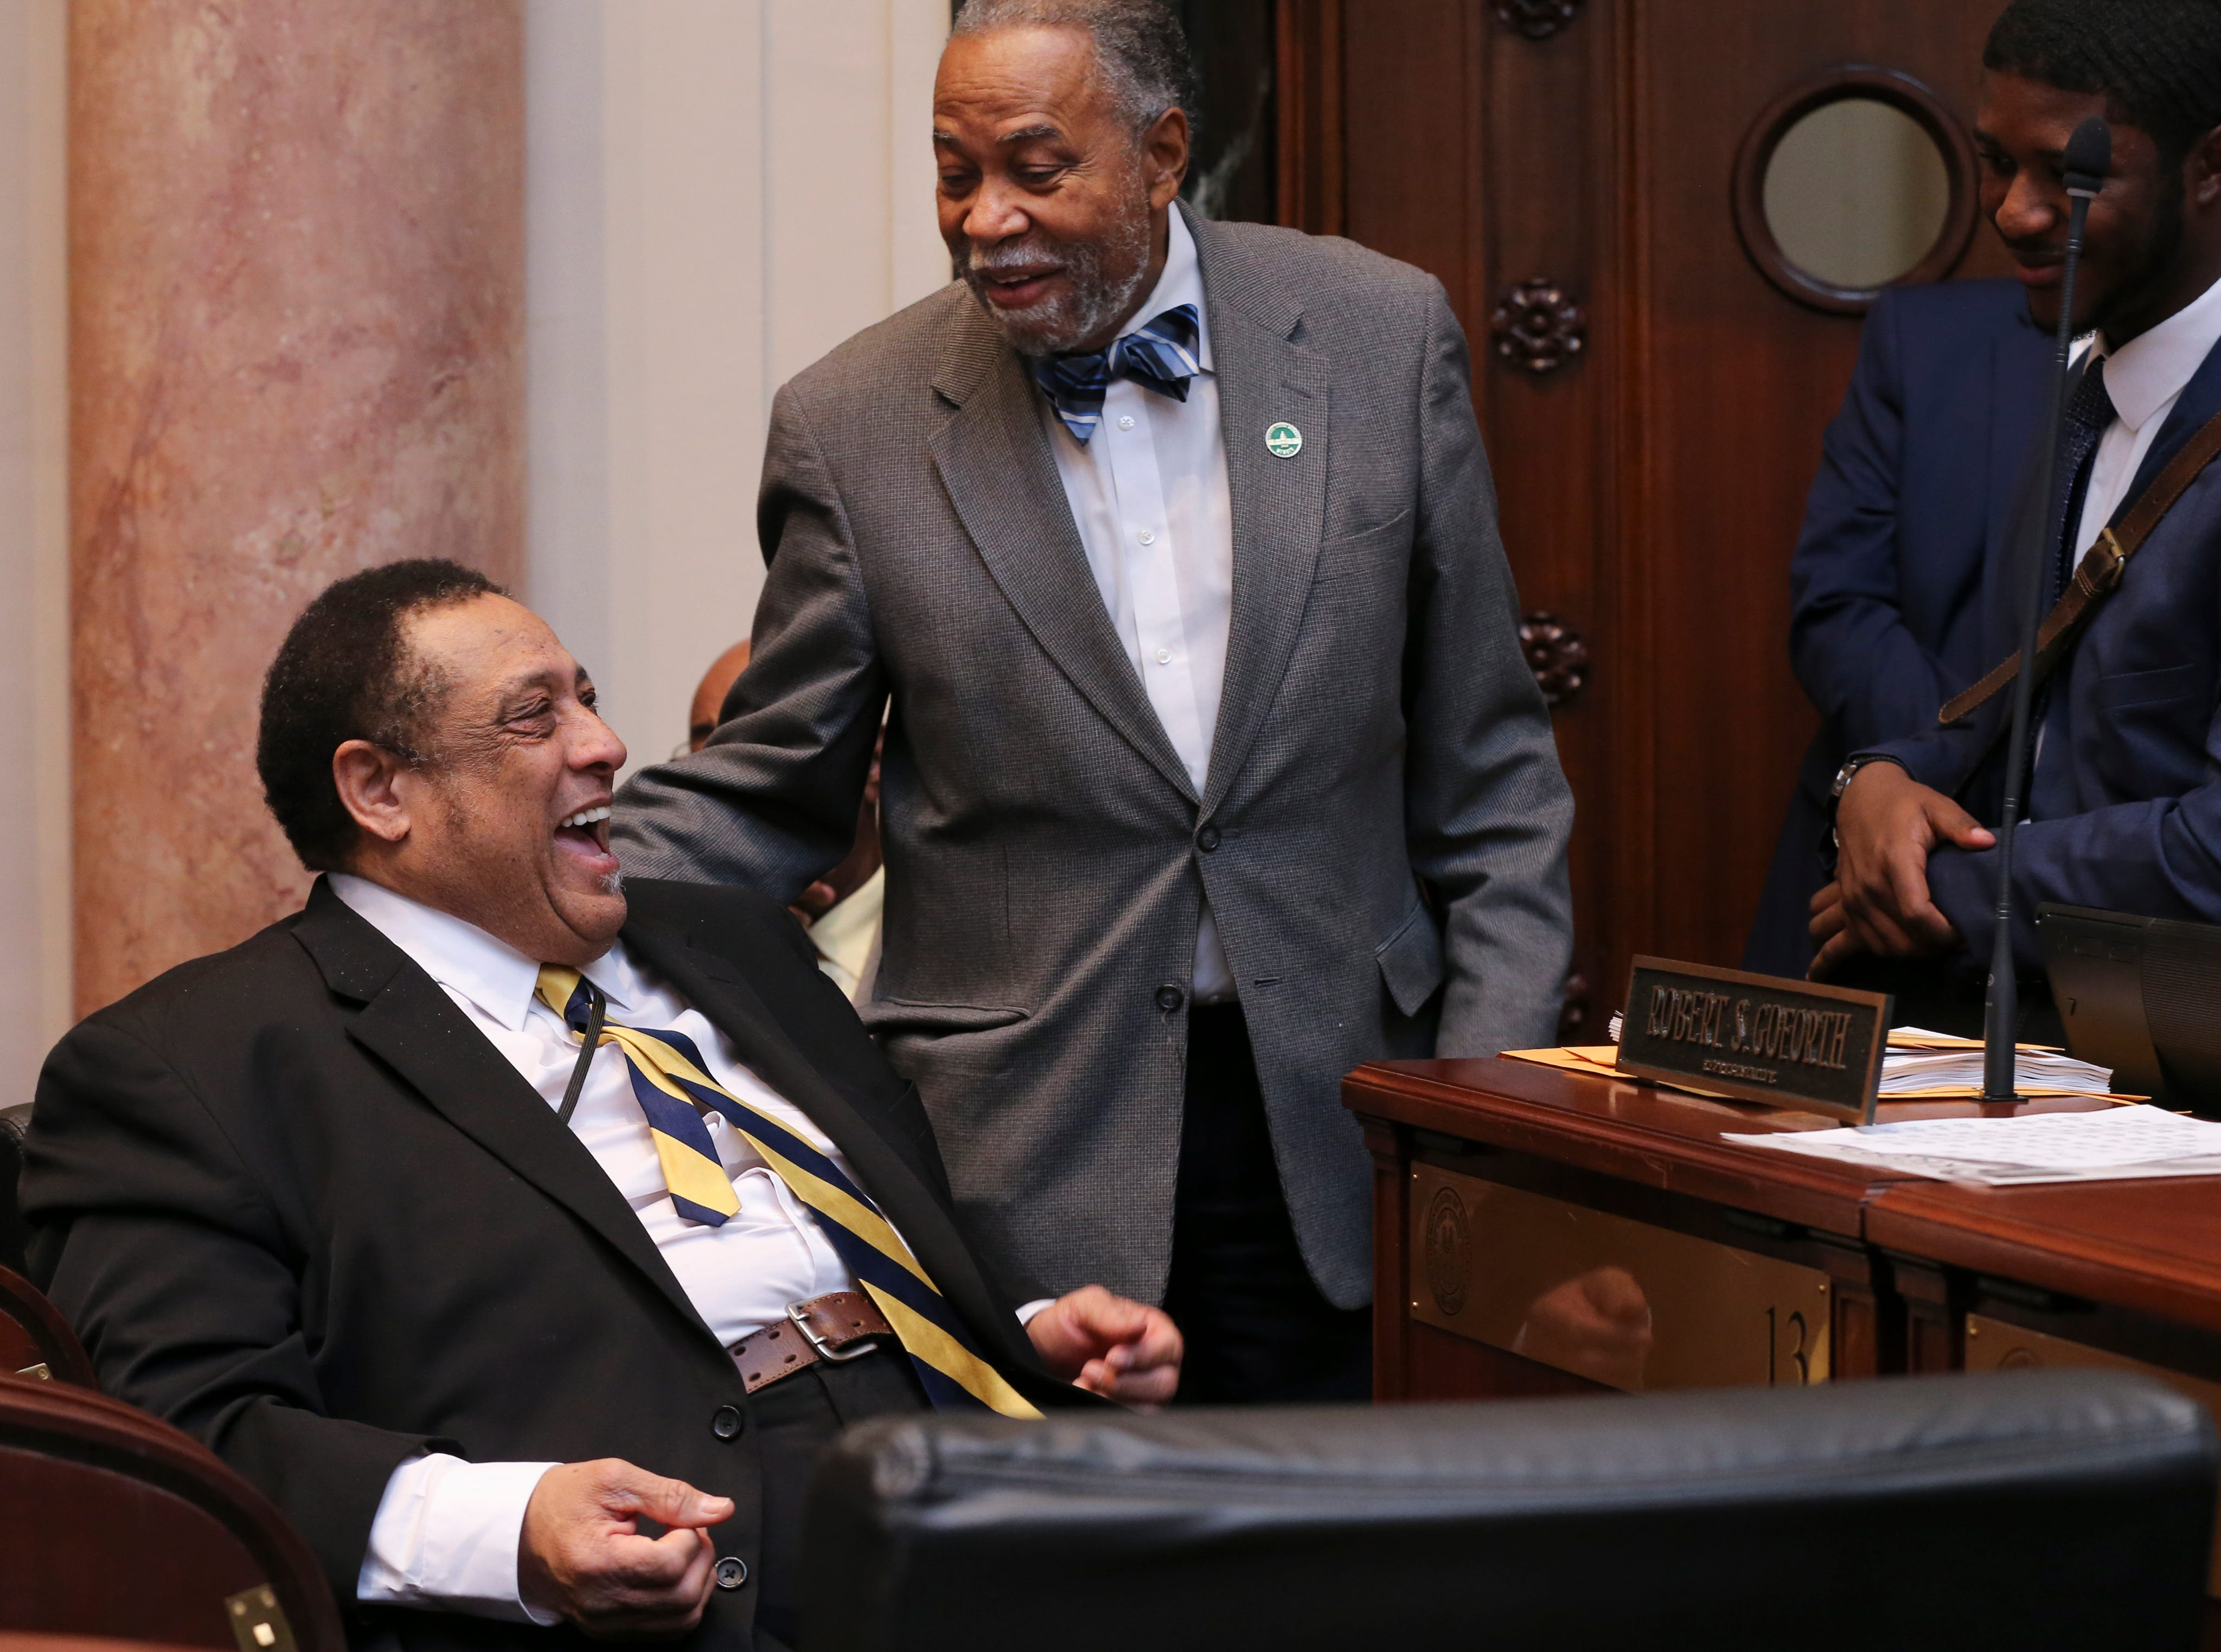 Sen. Gerald Neal, center, came over to the House to congratulate Rep. Jim Glenn, left, who was elected to the House seat for Owensboro by one vote.  The the disputed House seat is being investigated by a committee formed by the House.Jan. 8, 2019